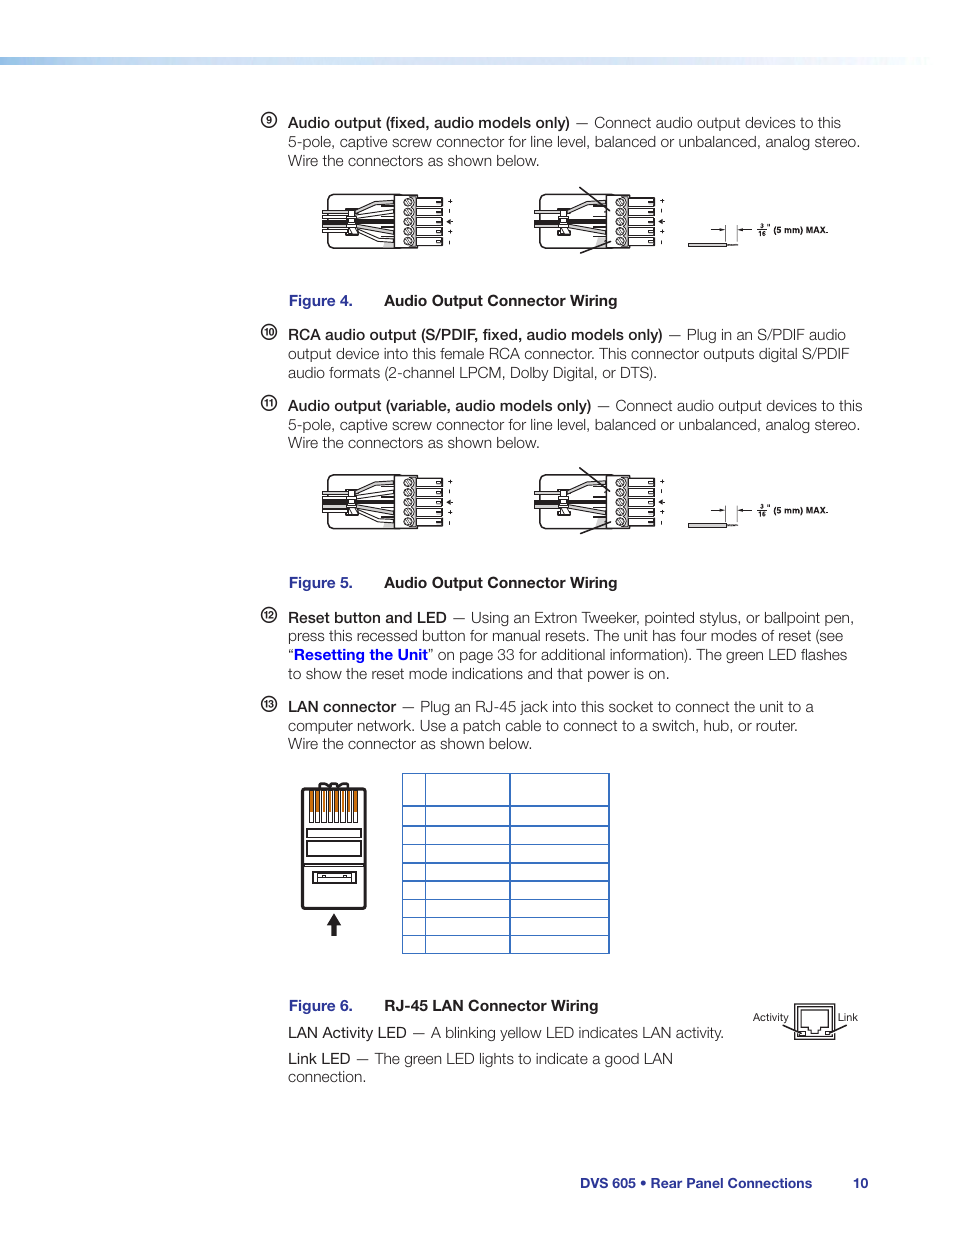 Extron Audio Wiring Diagram